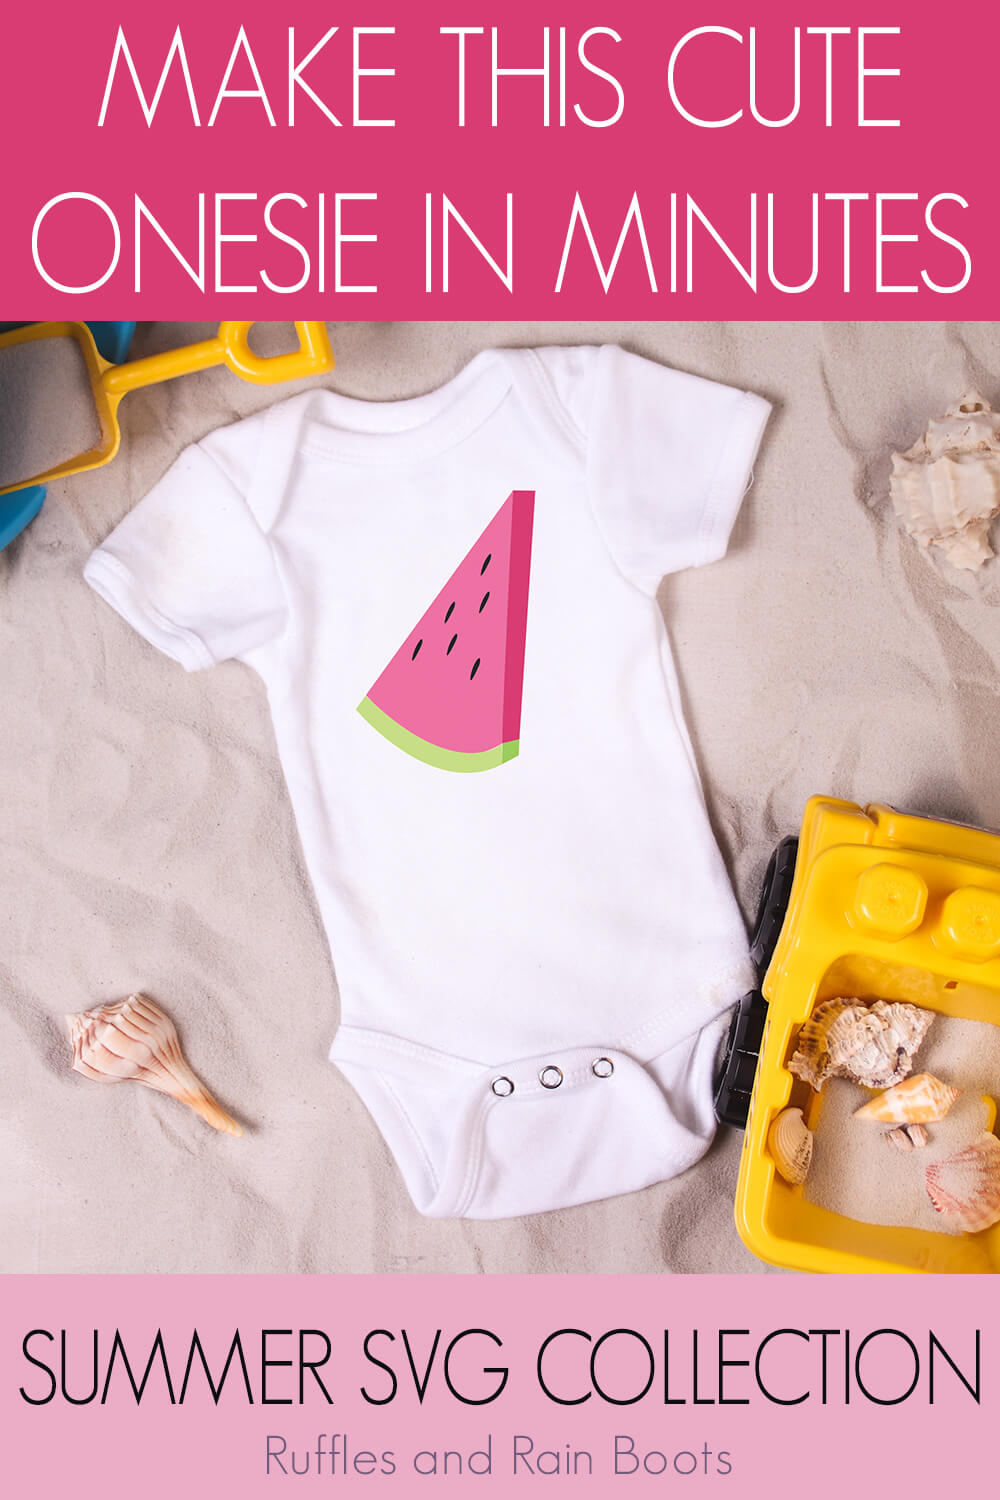 Watermelon Slice free summer svg for Silhouette on baby onesie next to kid toy pail and shovel and a toy dump truck with sea shells scattered around on a bed of sand with text which reads make this cute onesie in minutes summer svg collection